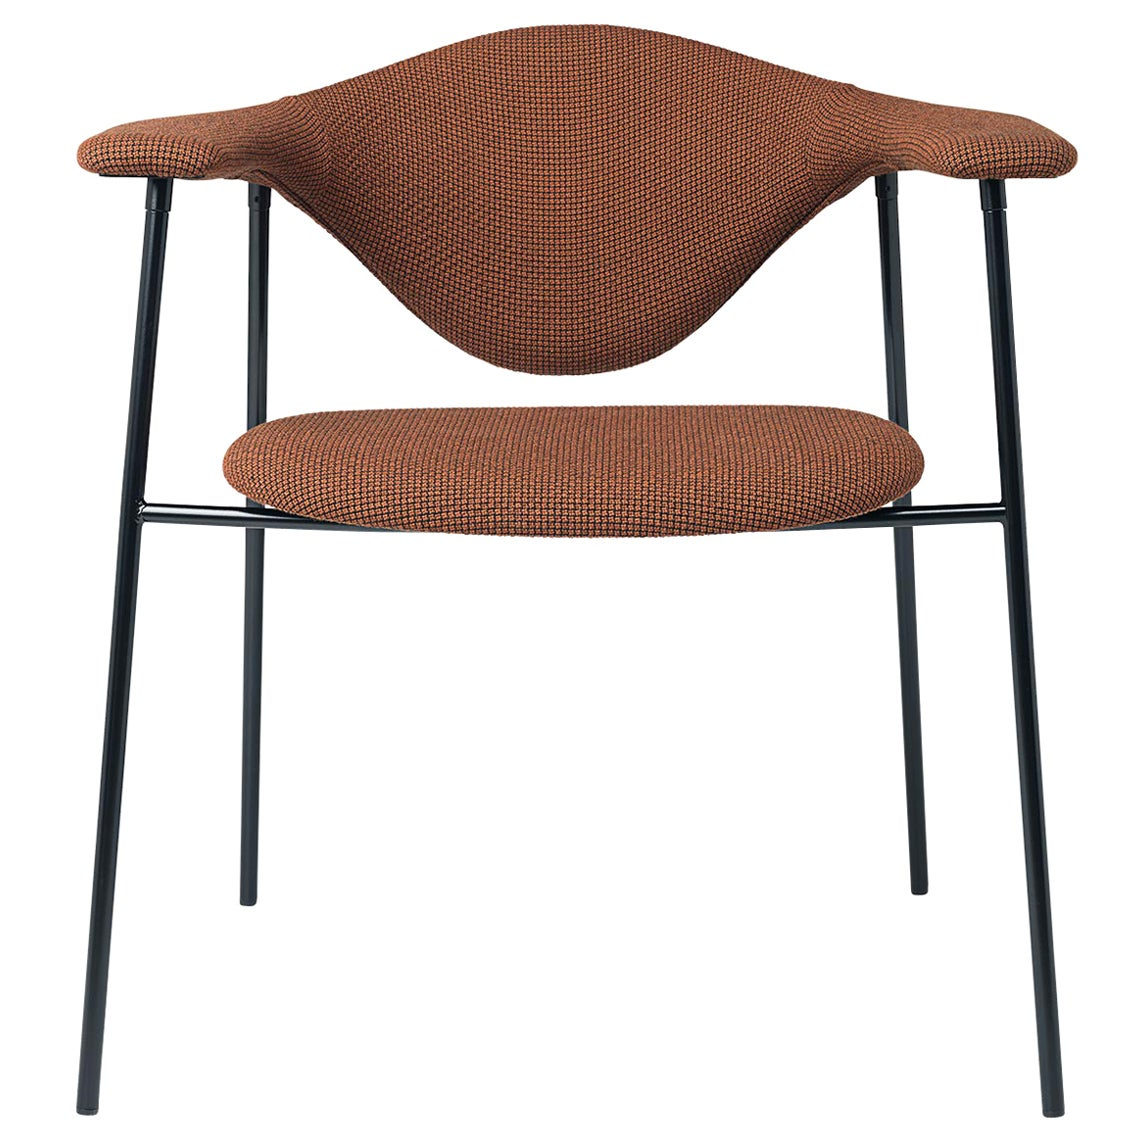 Masculo Dining Chair, Fully Upholstered, 4 Leg